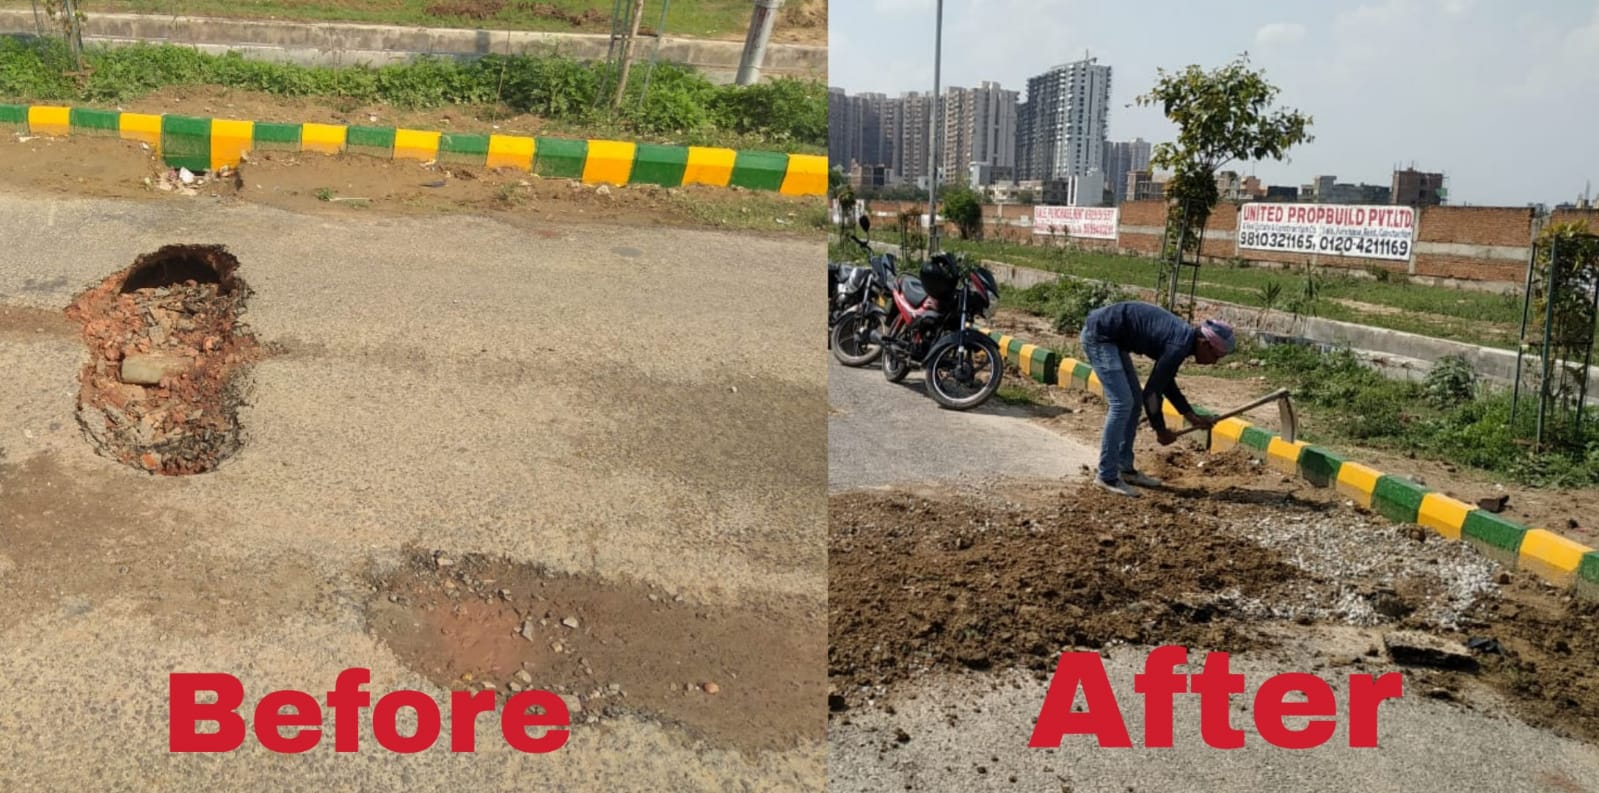 Noida Authority repairs road in less than 5 hours flat